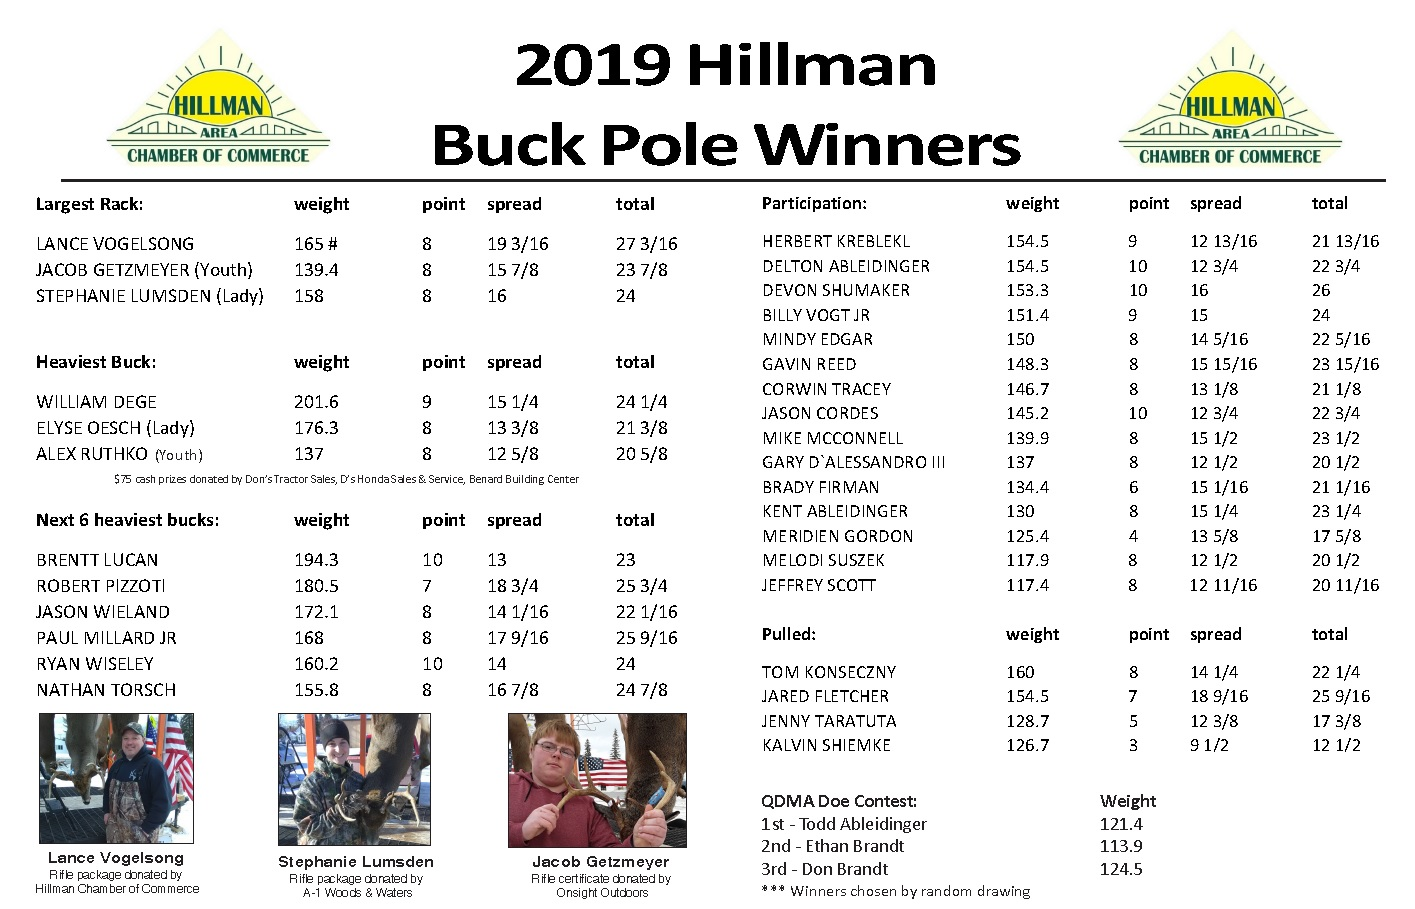 2019 buck pole insert---FROM TRIBUNE----FINAL PROOF - side 1